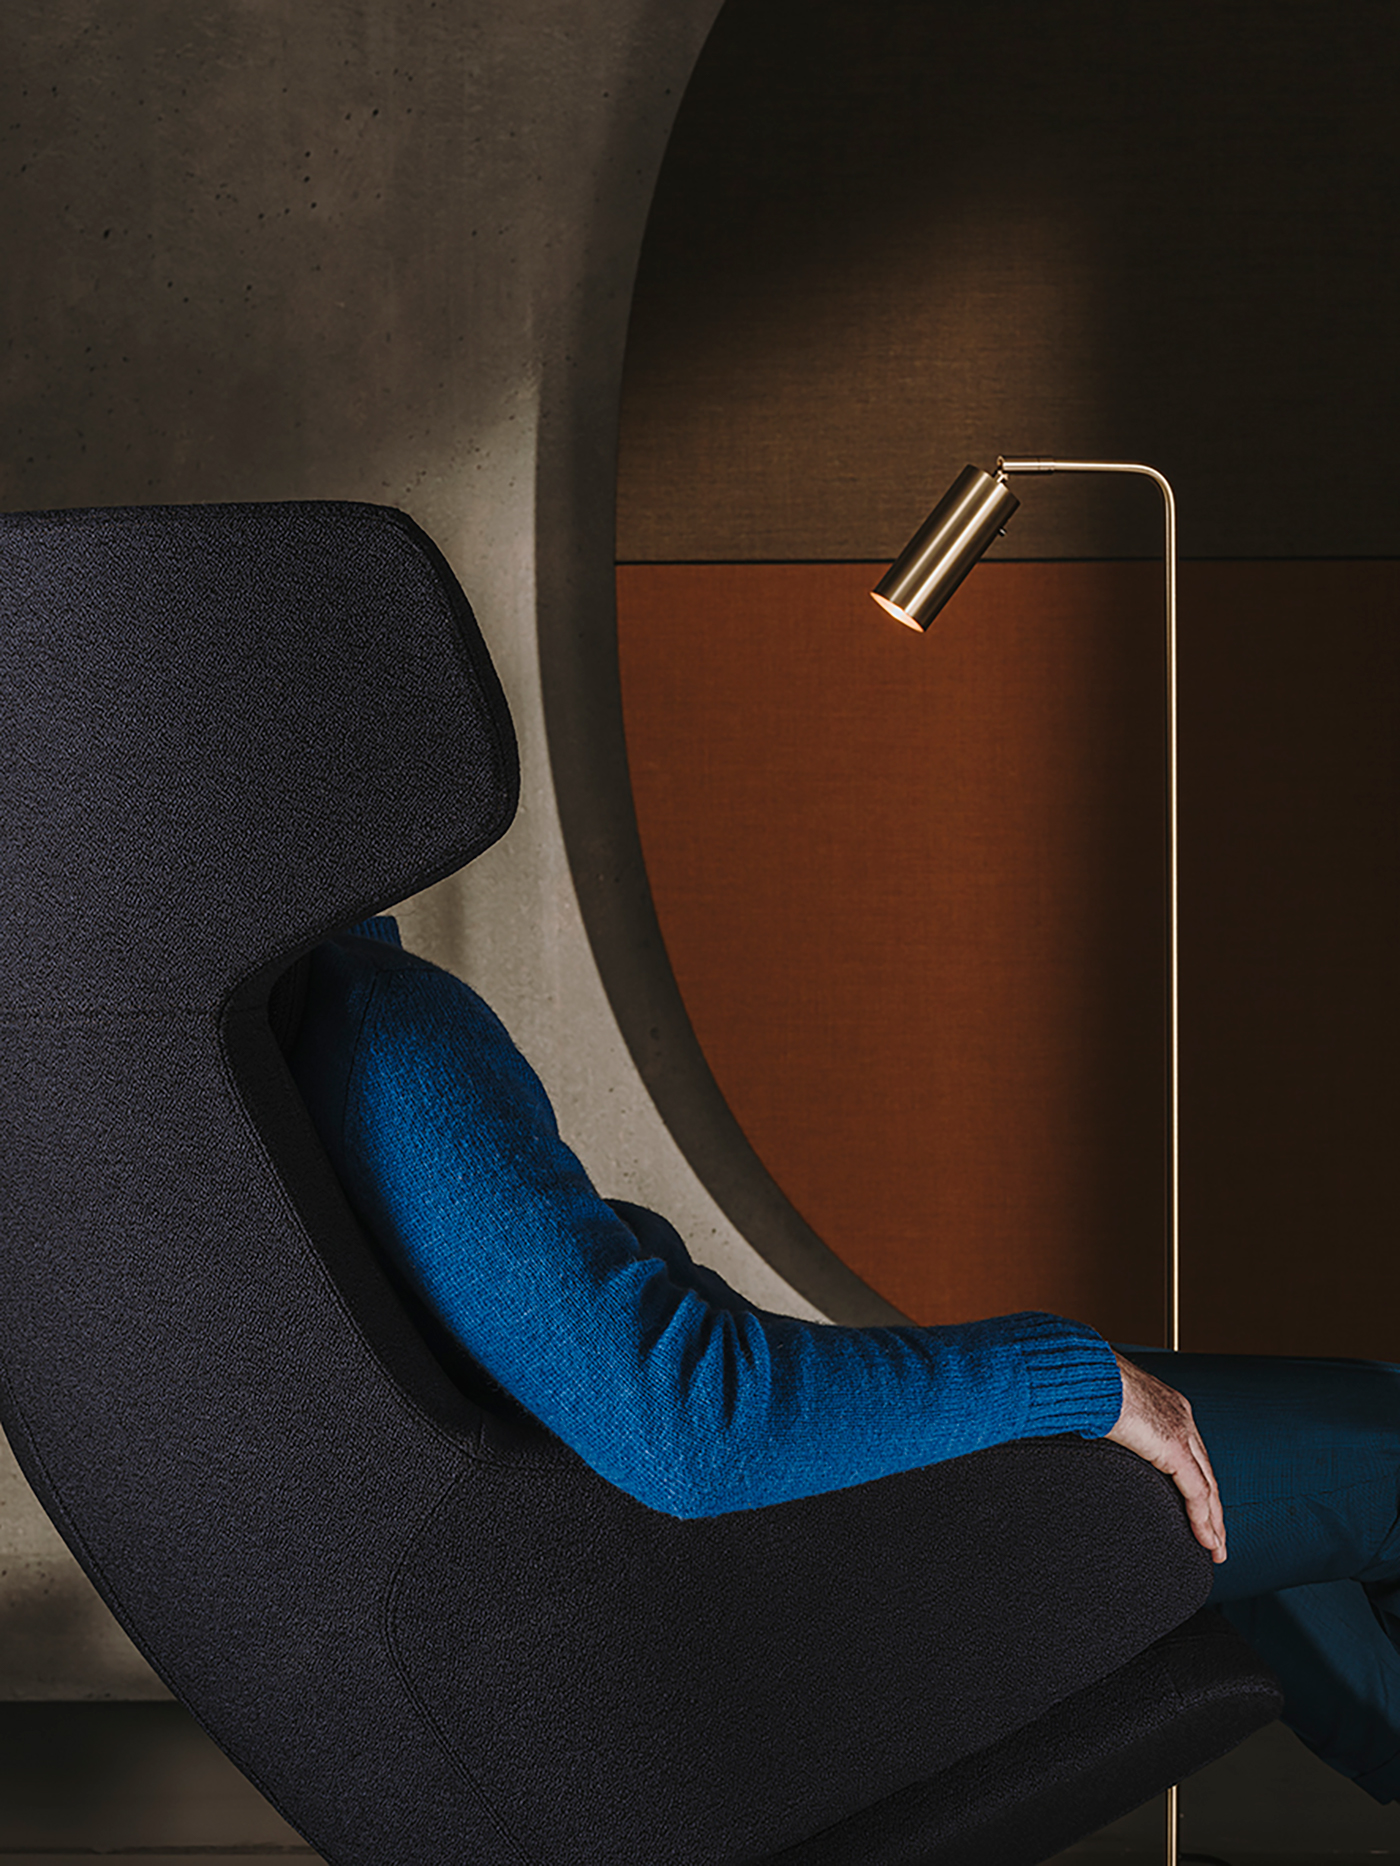 Aston Club chair by Jean-Marie Massaud. © Photo by Salva Lopez